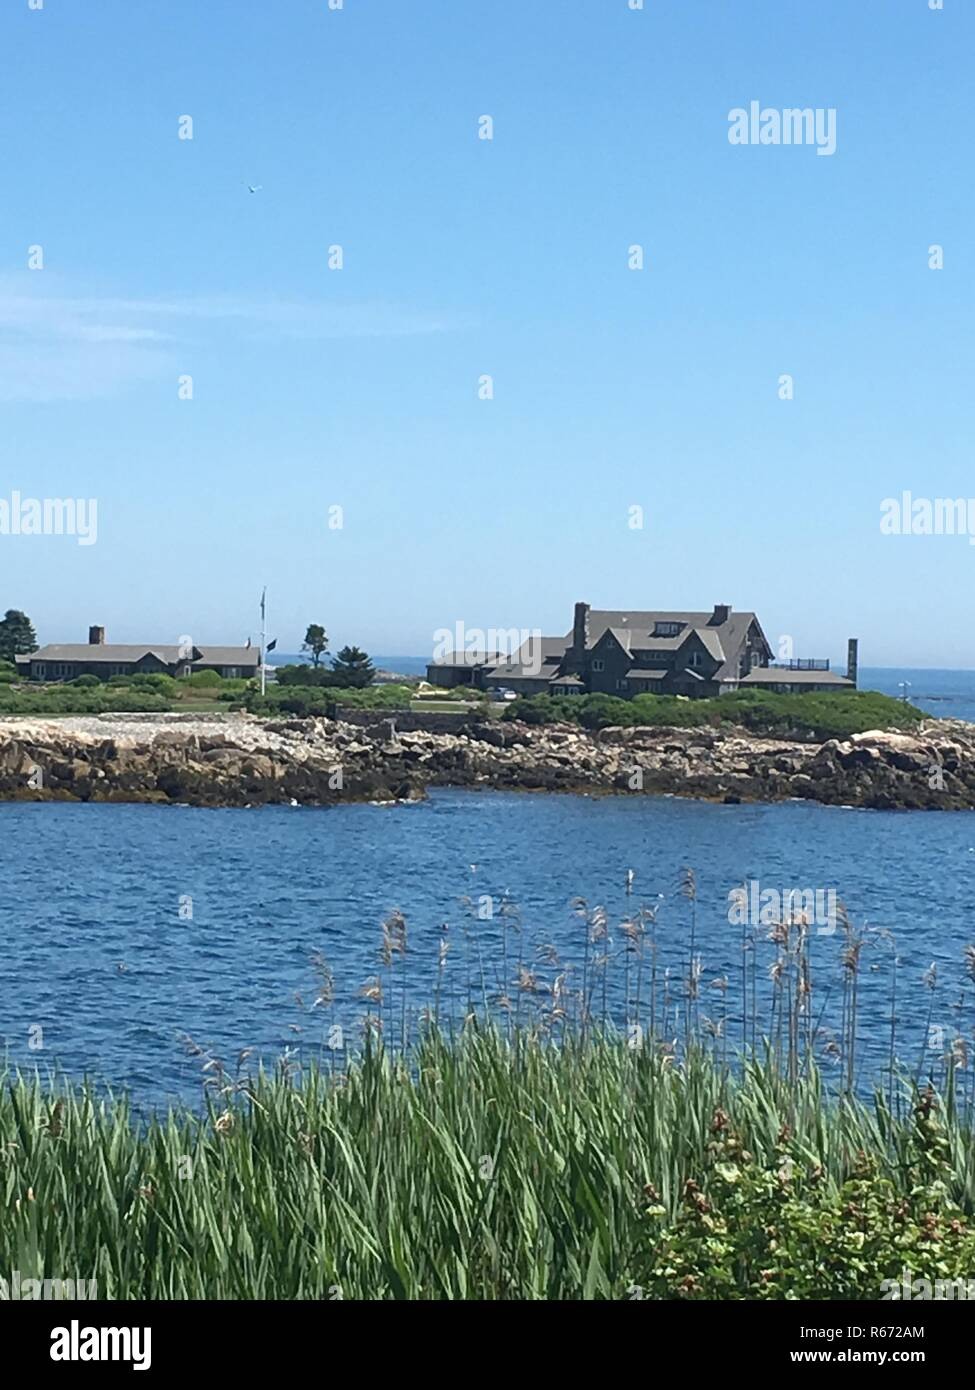 Kennebunkport Me Aug 1 The Bush Compound In Kennebunkport Main